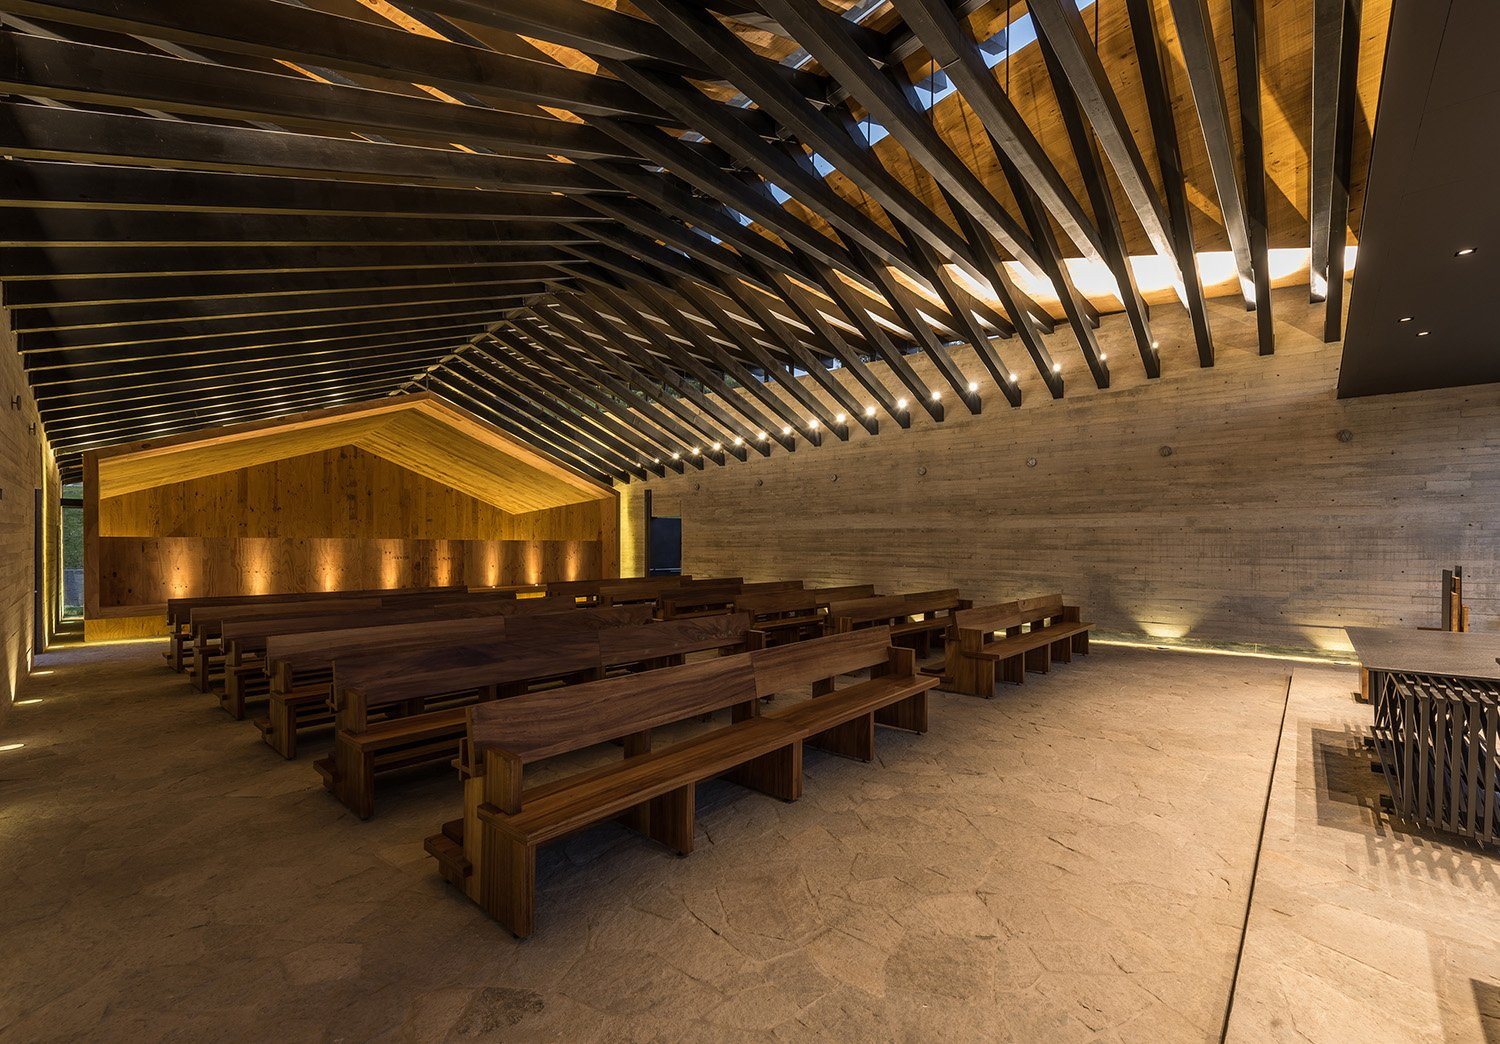 The interior is composed by a 12 wood benches for 72 people, a choir area and the altar area. Jaime Navarro Soto